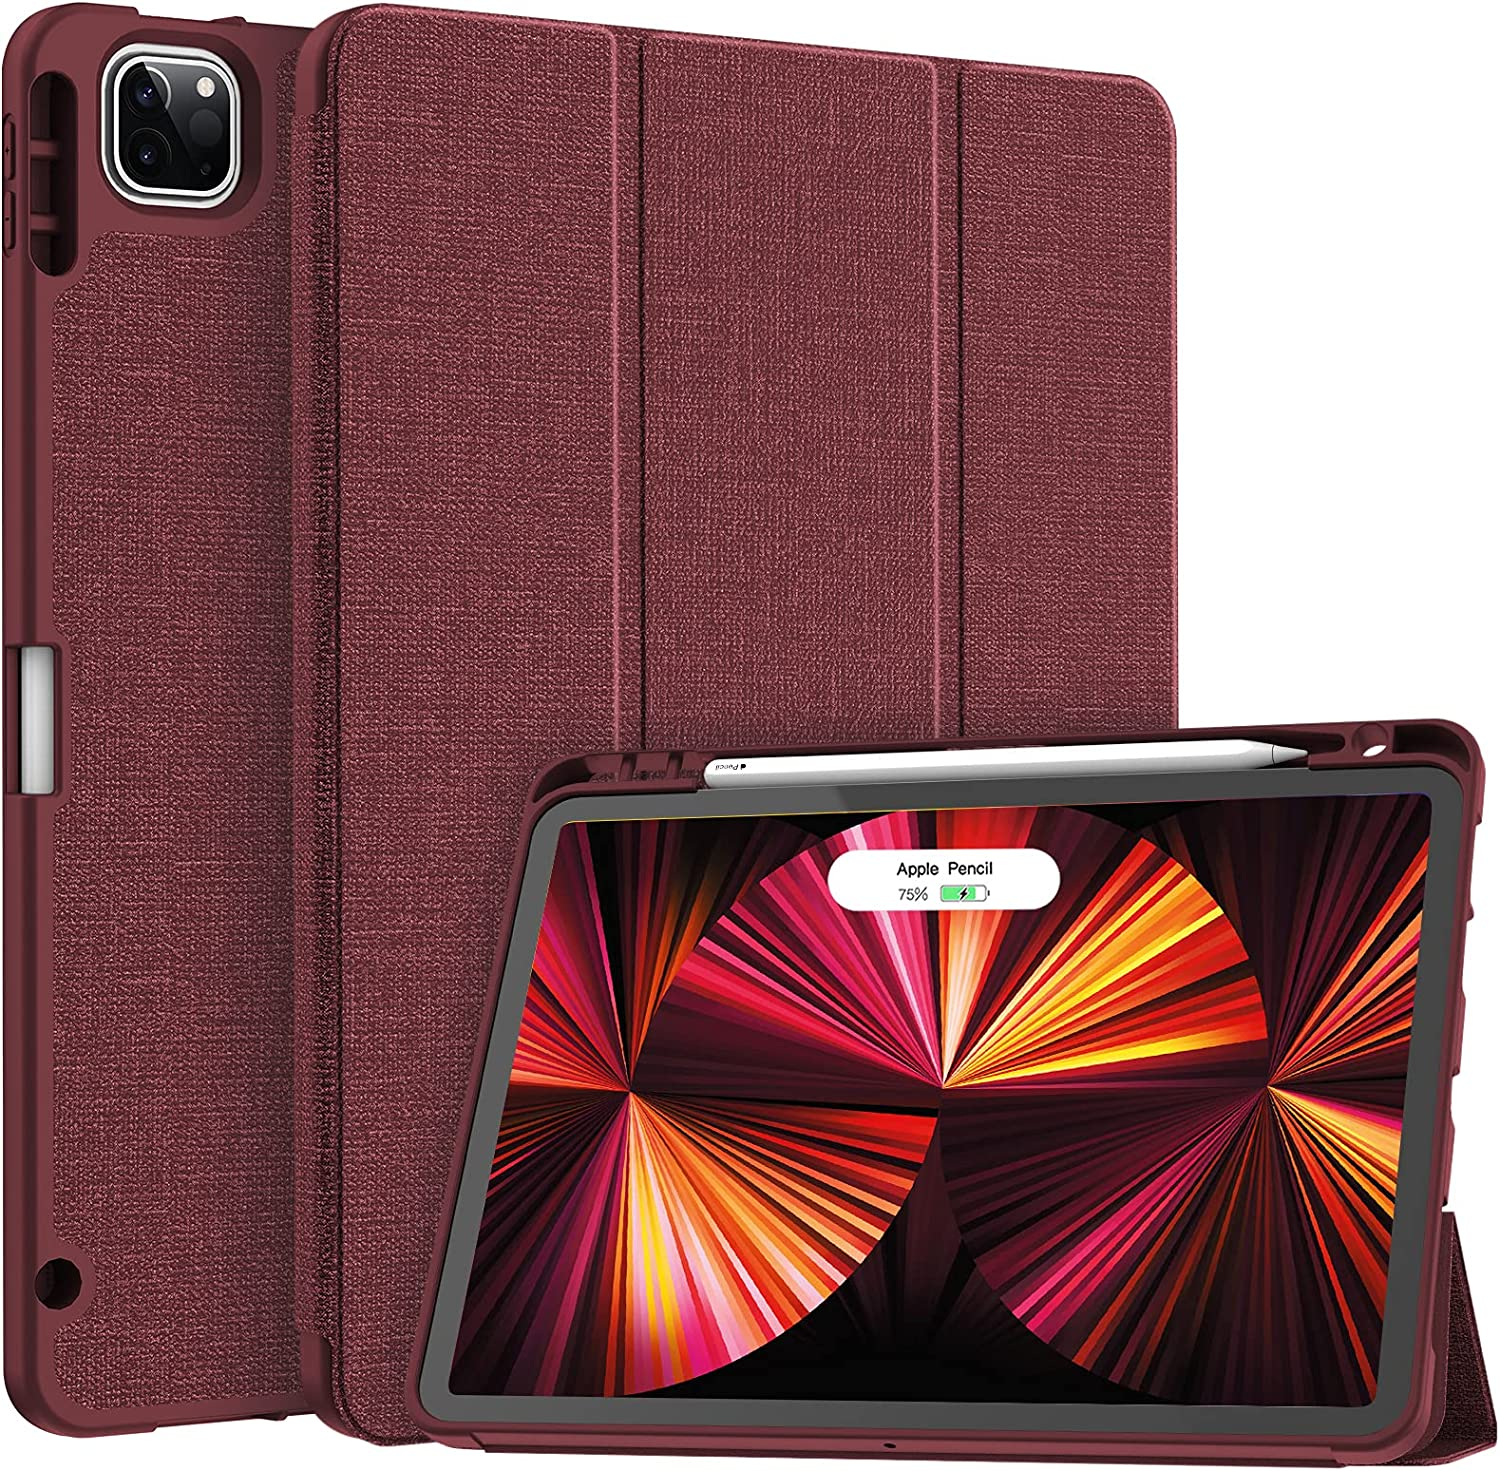 Soke New iPad Pro 11 Case 2021 with Pencil Holder - [Full Body Protection + 2nd Gen Apple Pencil Charging + Auto Wake/Sleep], Soft TPU Back Cover for 2021 iPad Pro 11 inch(Wine)